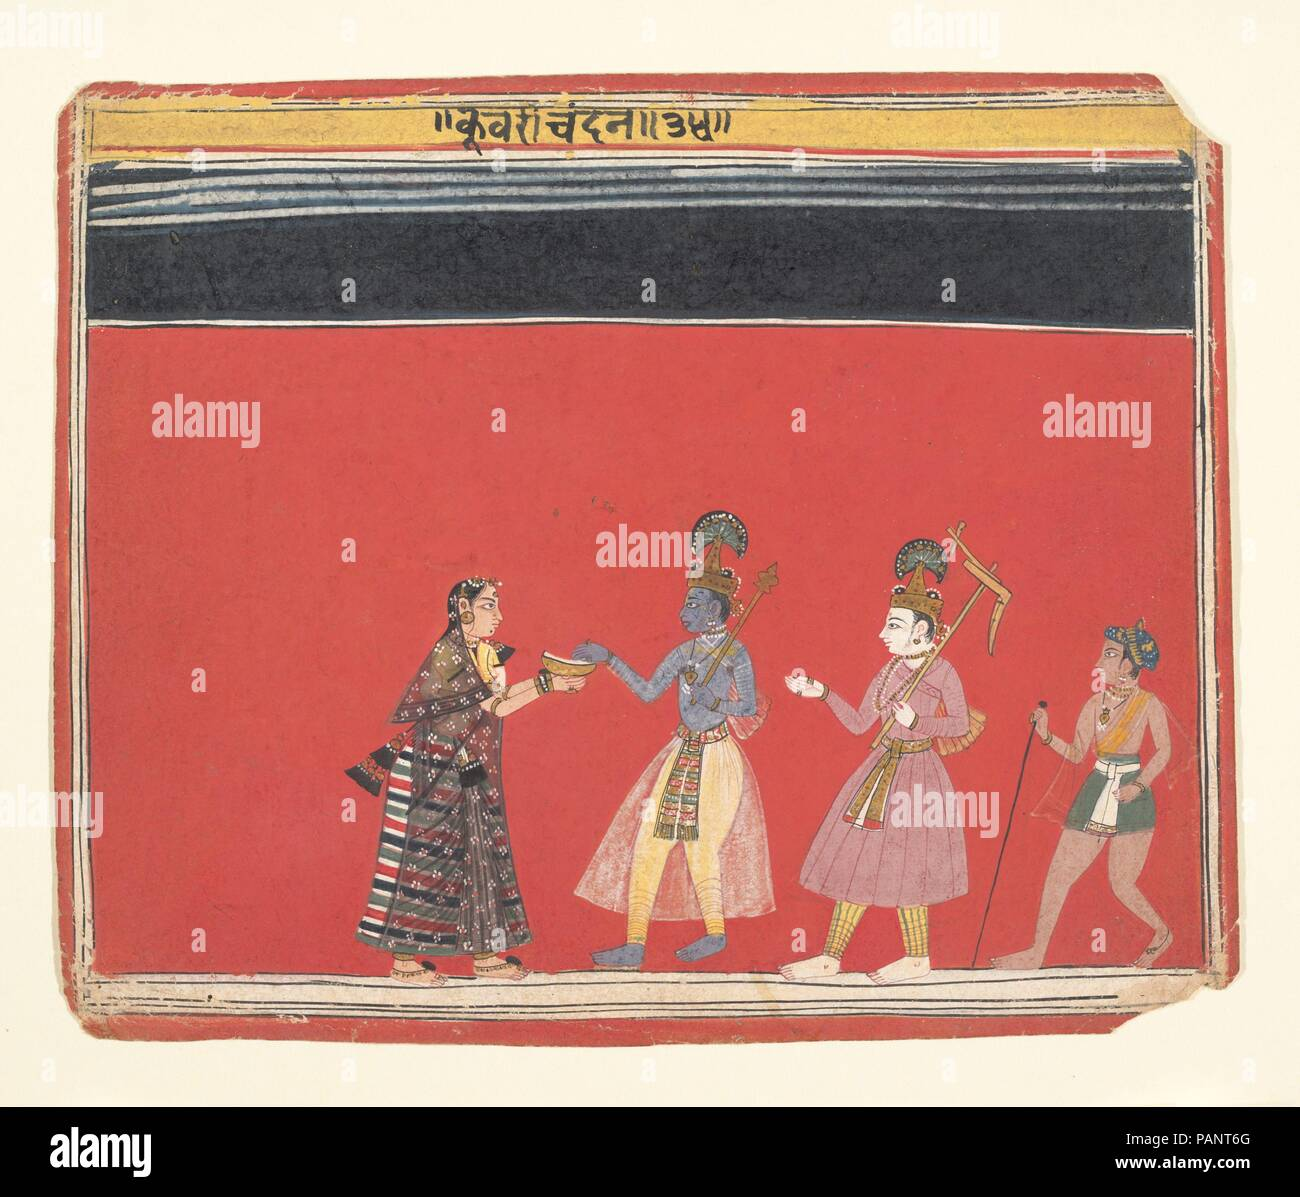 Krishna Accepts an Offering from the Hunchbacked Woman Trivakra: Page from a Bhagavata Purana Series. Culture: India (Madhya Pradesh, Malwa). Dimensions: 6 3/4 x 8 3/16 in. (17.1 x 20.8 cm). Date: ca. 1650.  While traveling, Krishna encounters the hunchbacked woman Trivakra and notices the wonderful ointments she made for the evil king Kamsa. Overcome by his presence, Trivakra offers the ointments to Krishna, who straightens her crooked back and transforms her into a perfectly proportioned, beautiful woman. The story illustrates Krishna's miraculous nature and Trivakra's devotion, which is ult - Stock Image